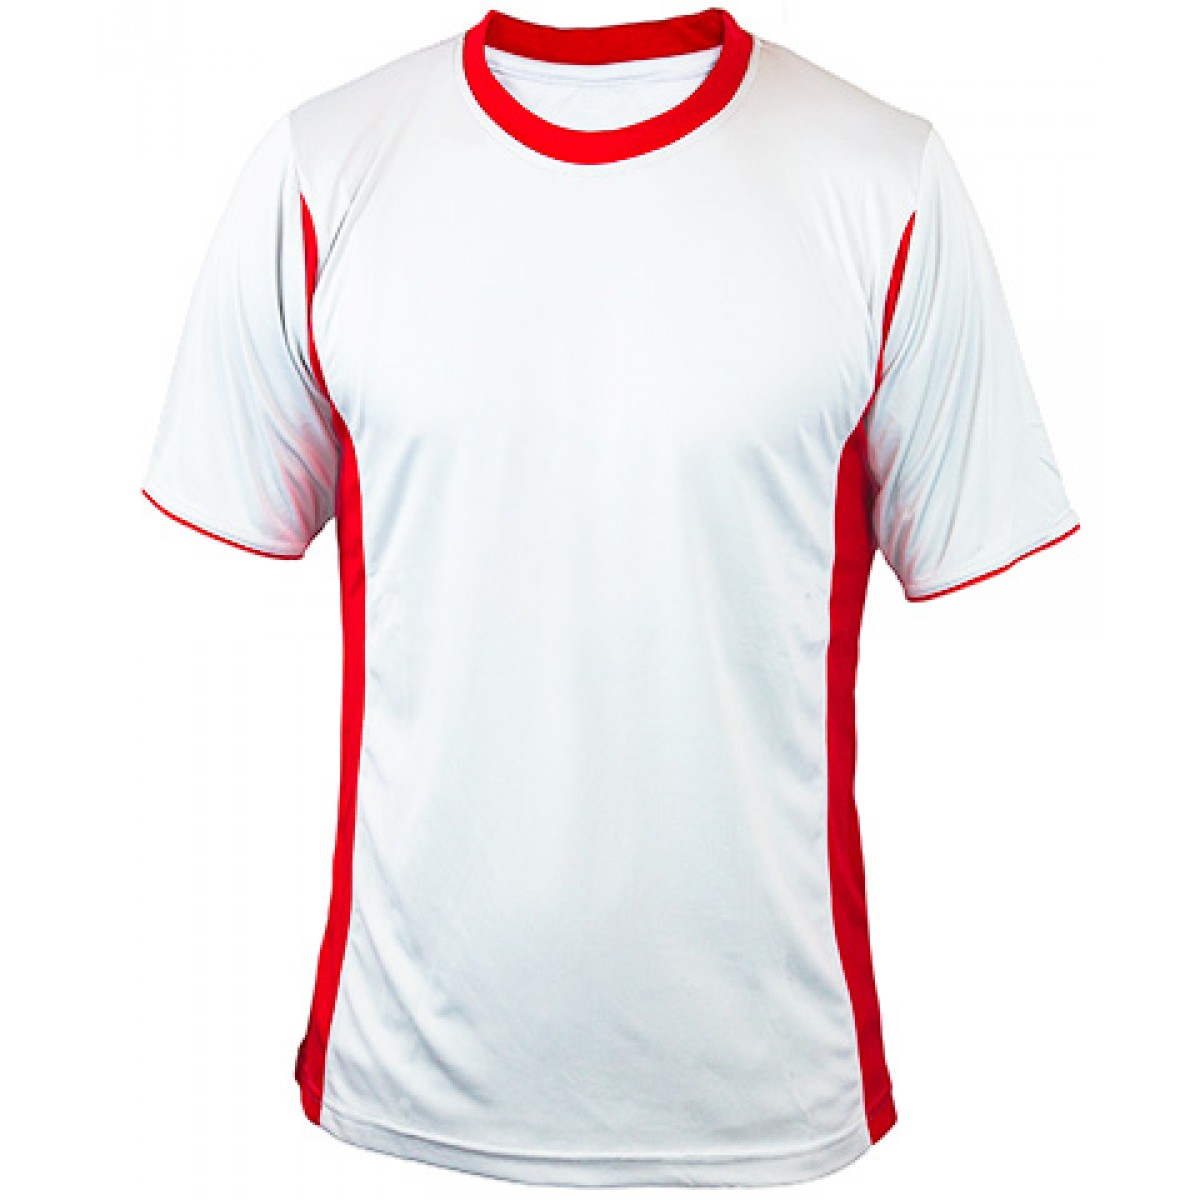 Short Sleeves Performance Fit With Side Insert-Red-XL